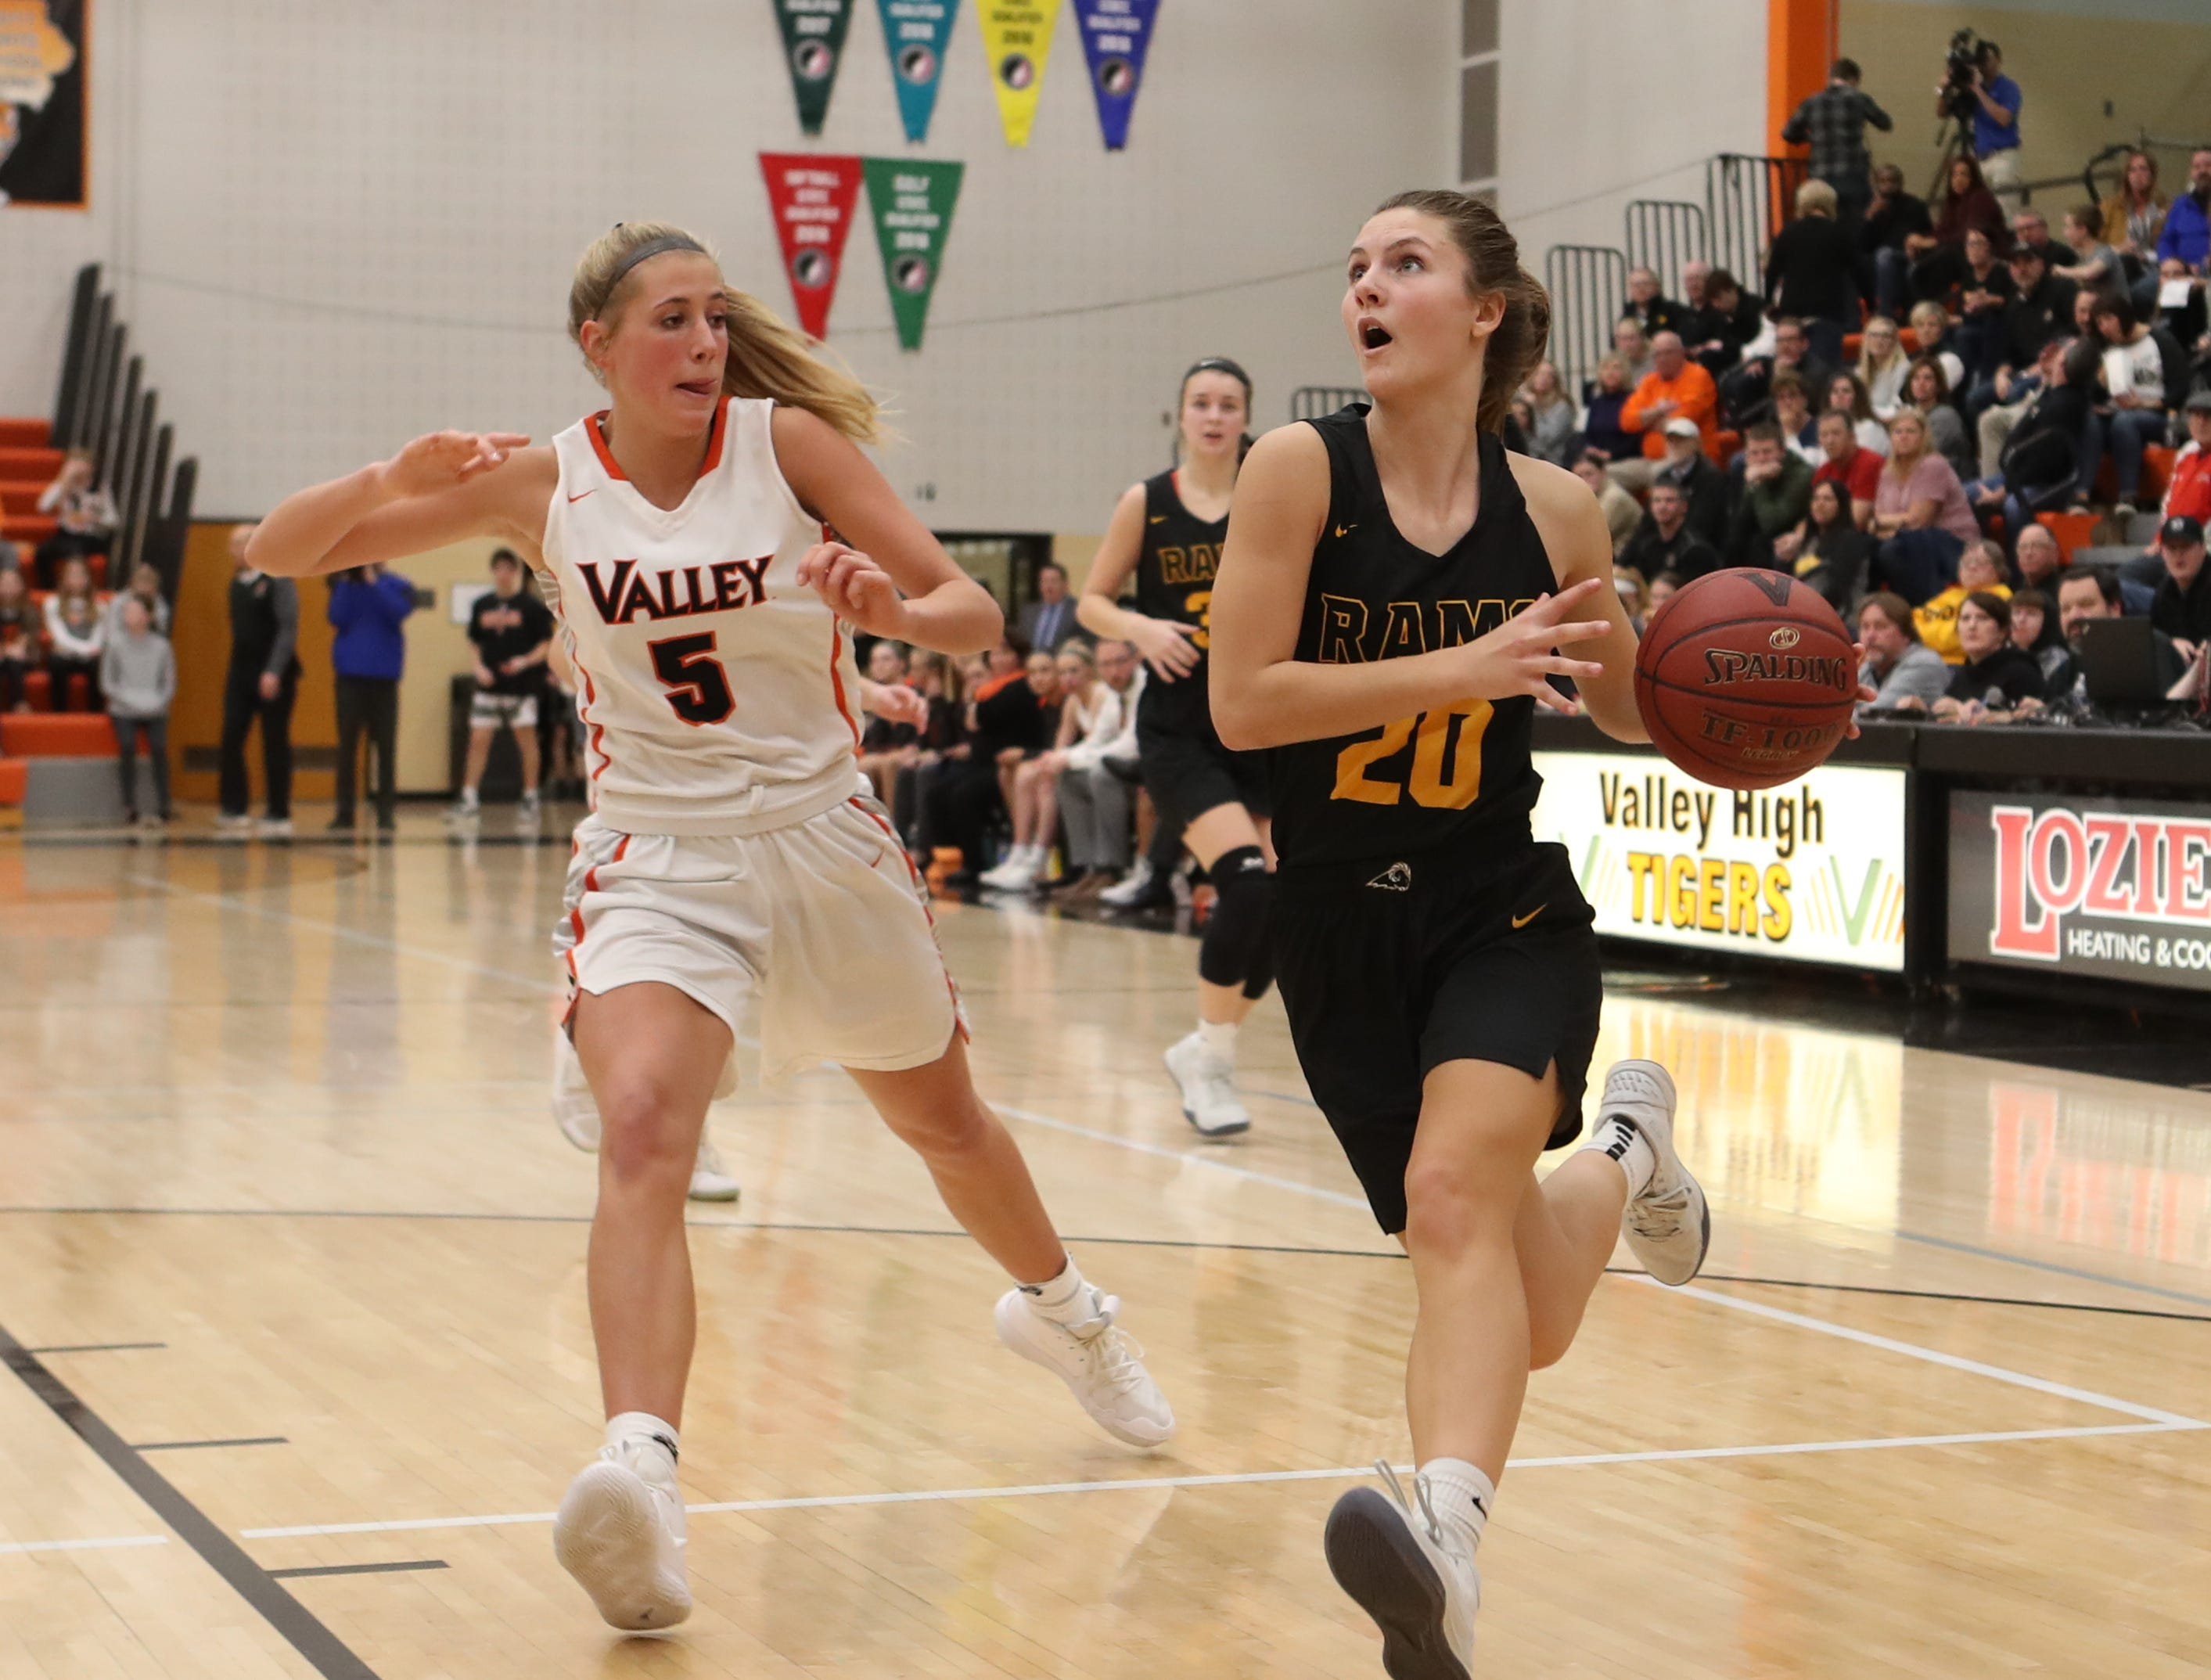 Southeast Polk Rams' Sami Albertson (20) drives past Valley Tigers' Grace Plummer during a girls basketball game at Valley High School on Jan. 11, 2019.